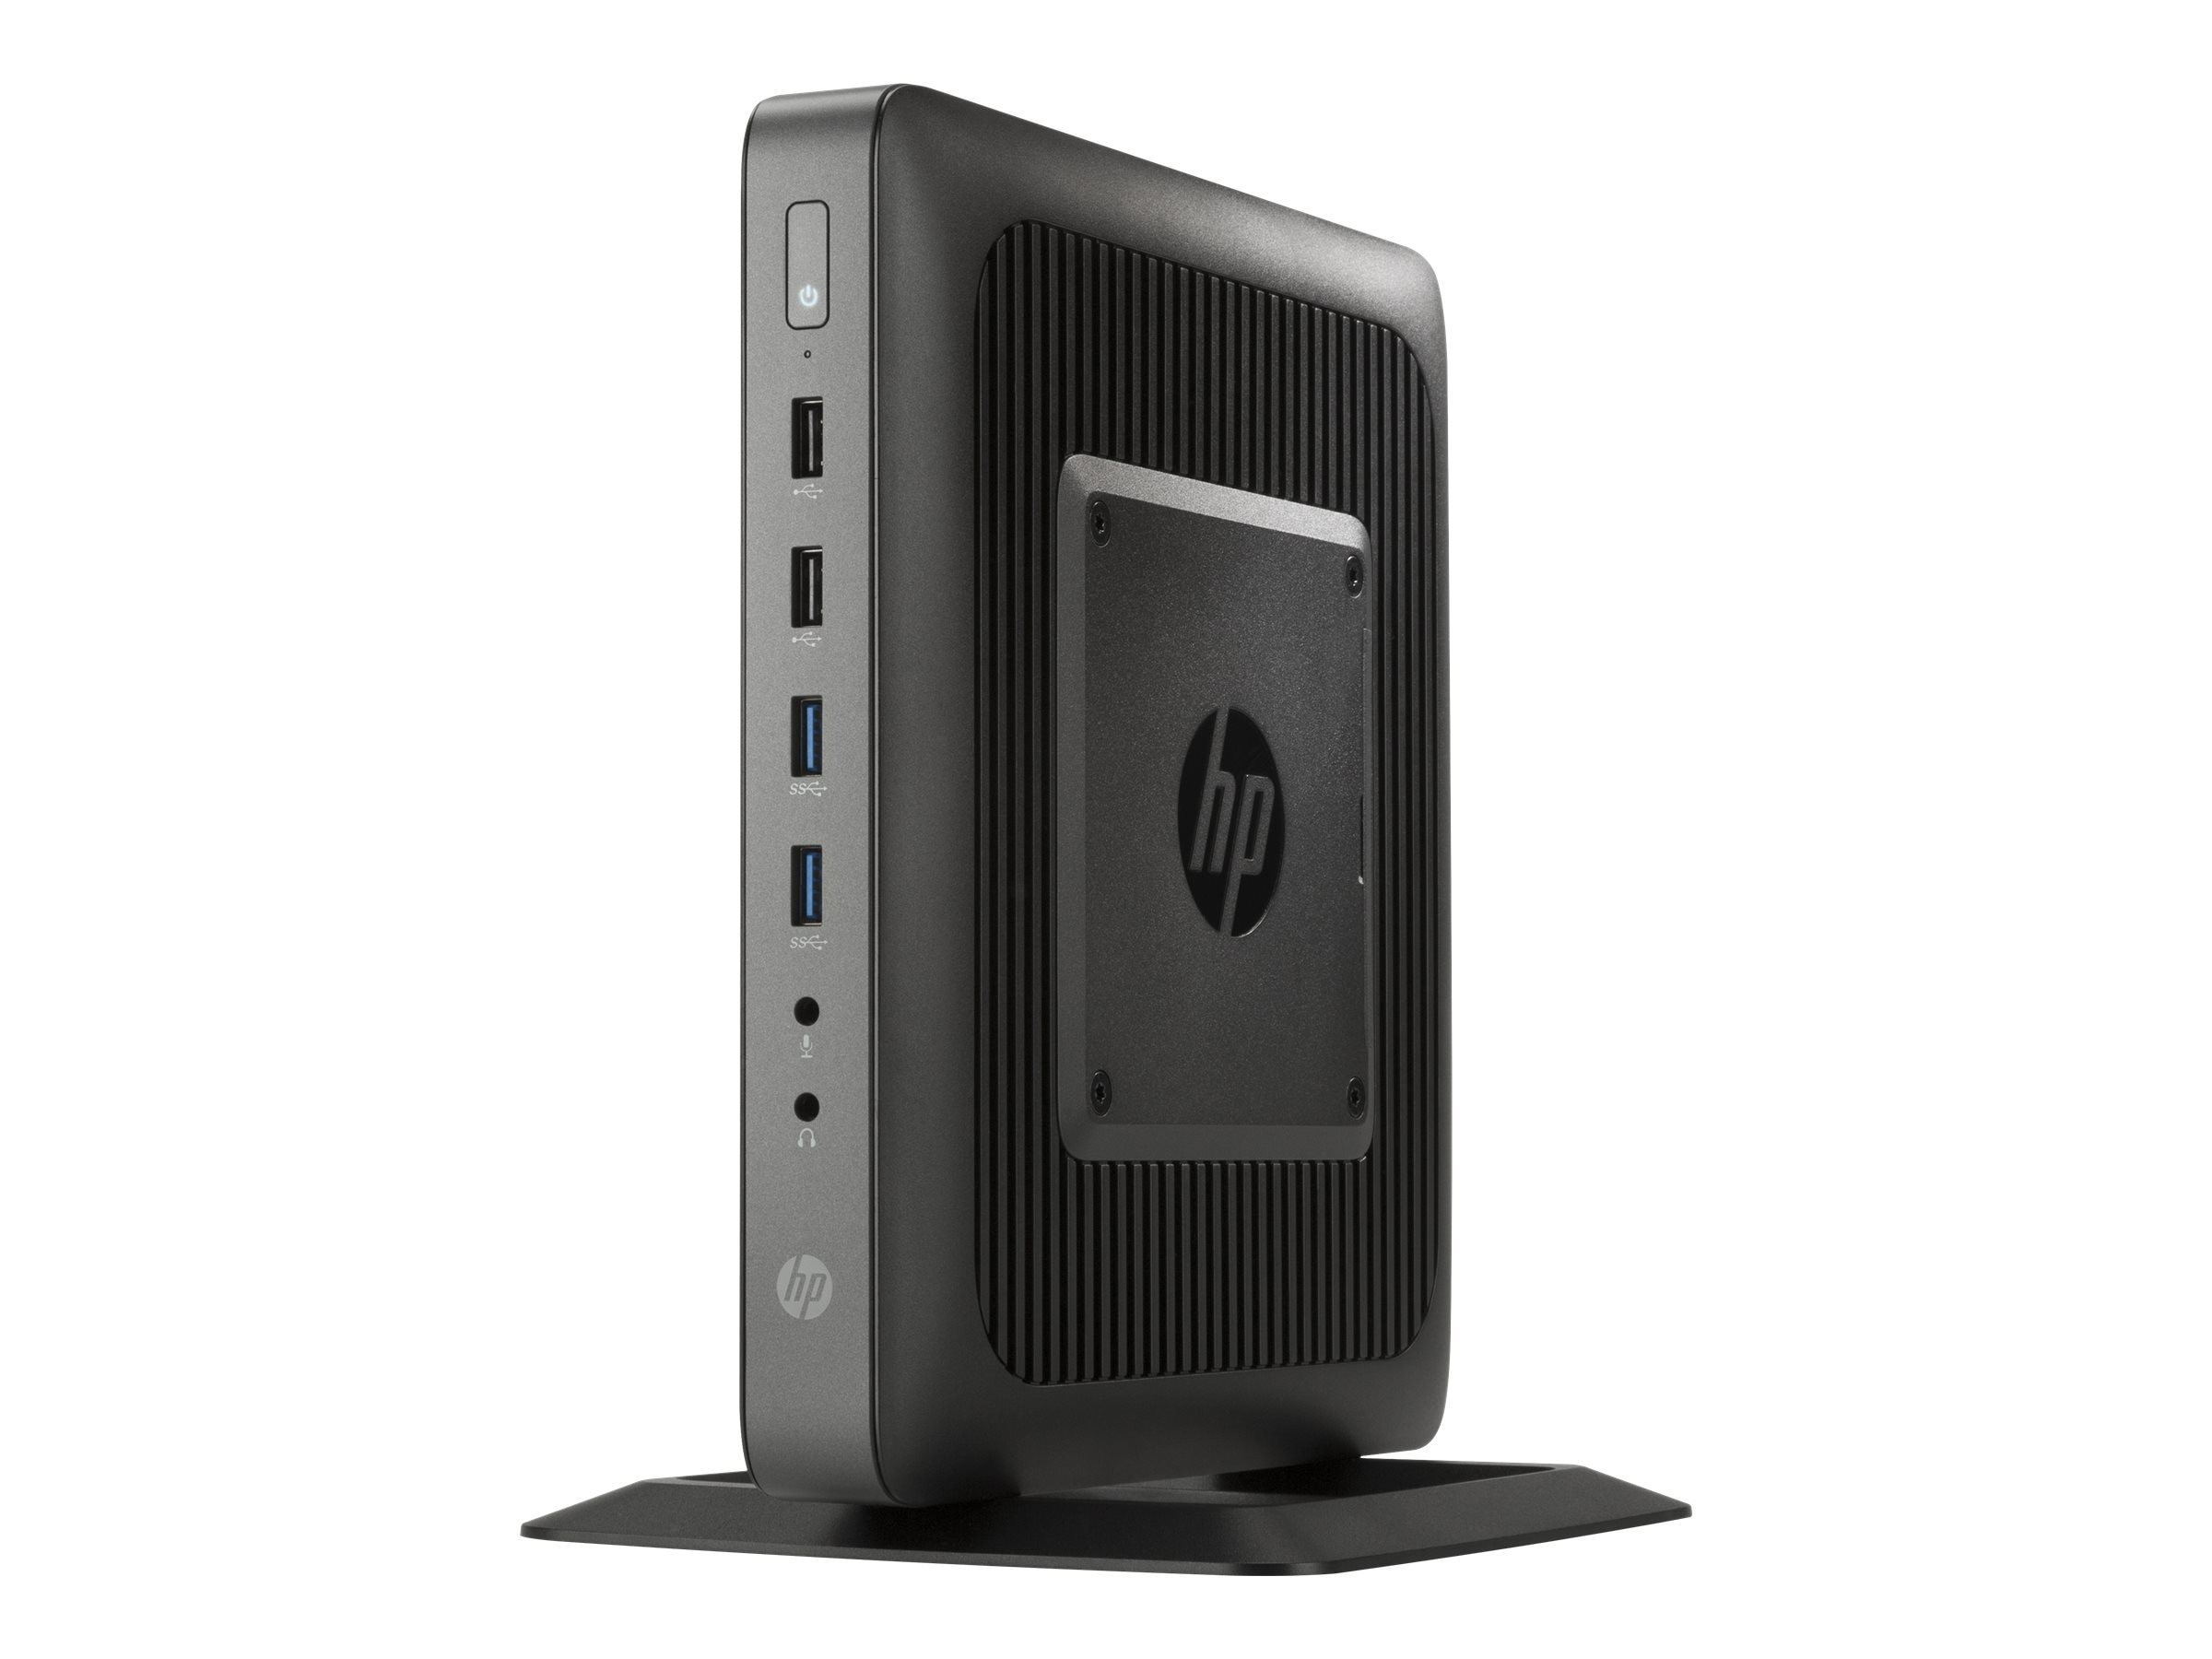 HP t620 Flexible Thin Client AMD QC GX-415GA 1.5GHz 4GB RAM 64GB Flash HD8330E GbE WES7E